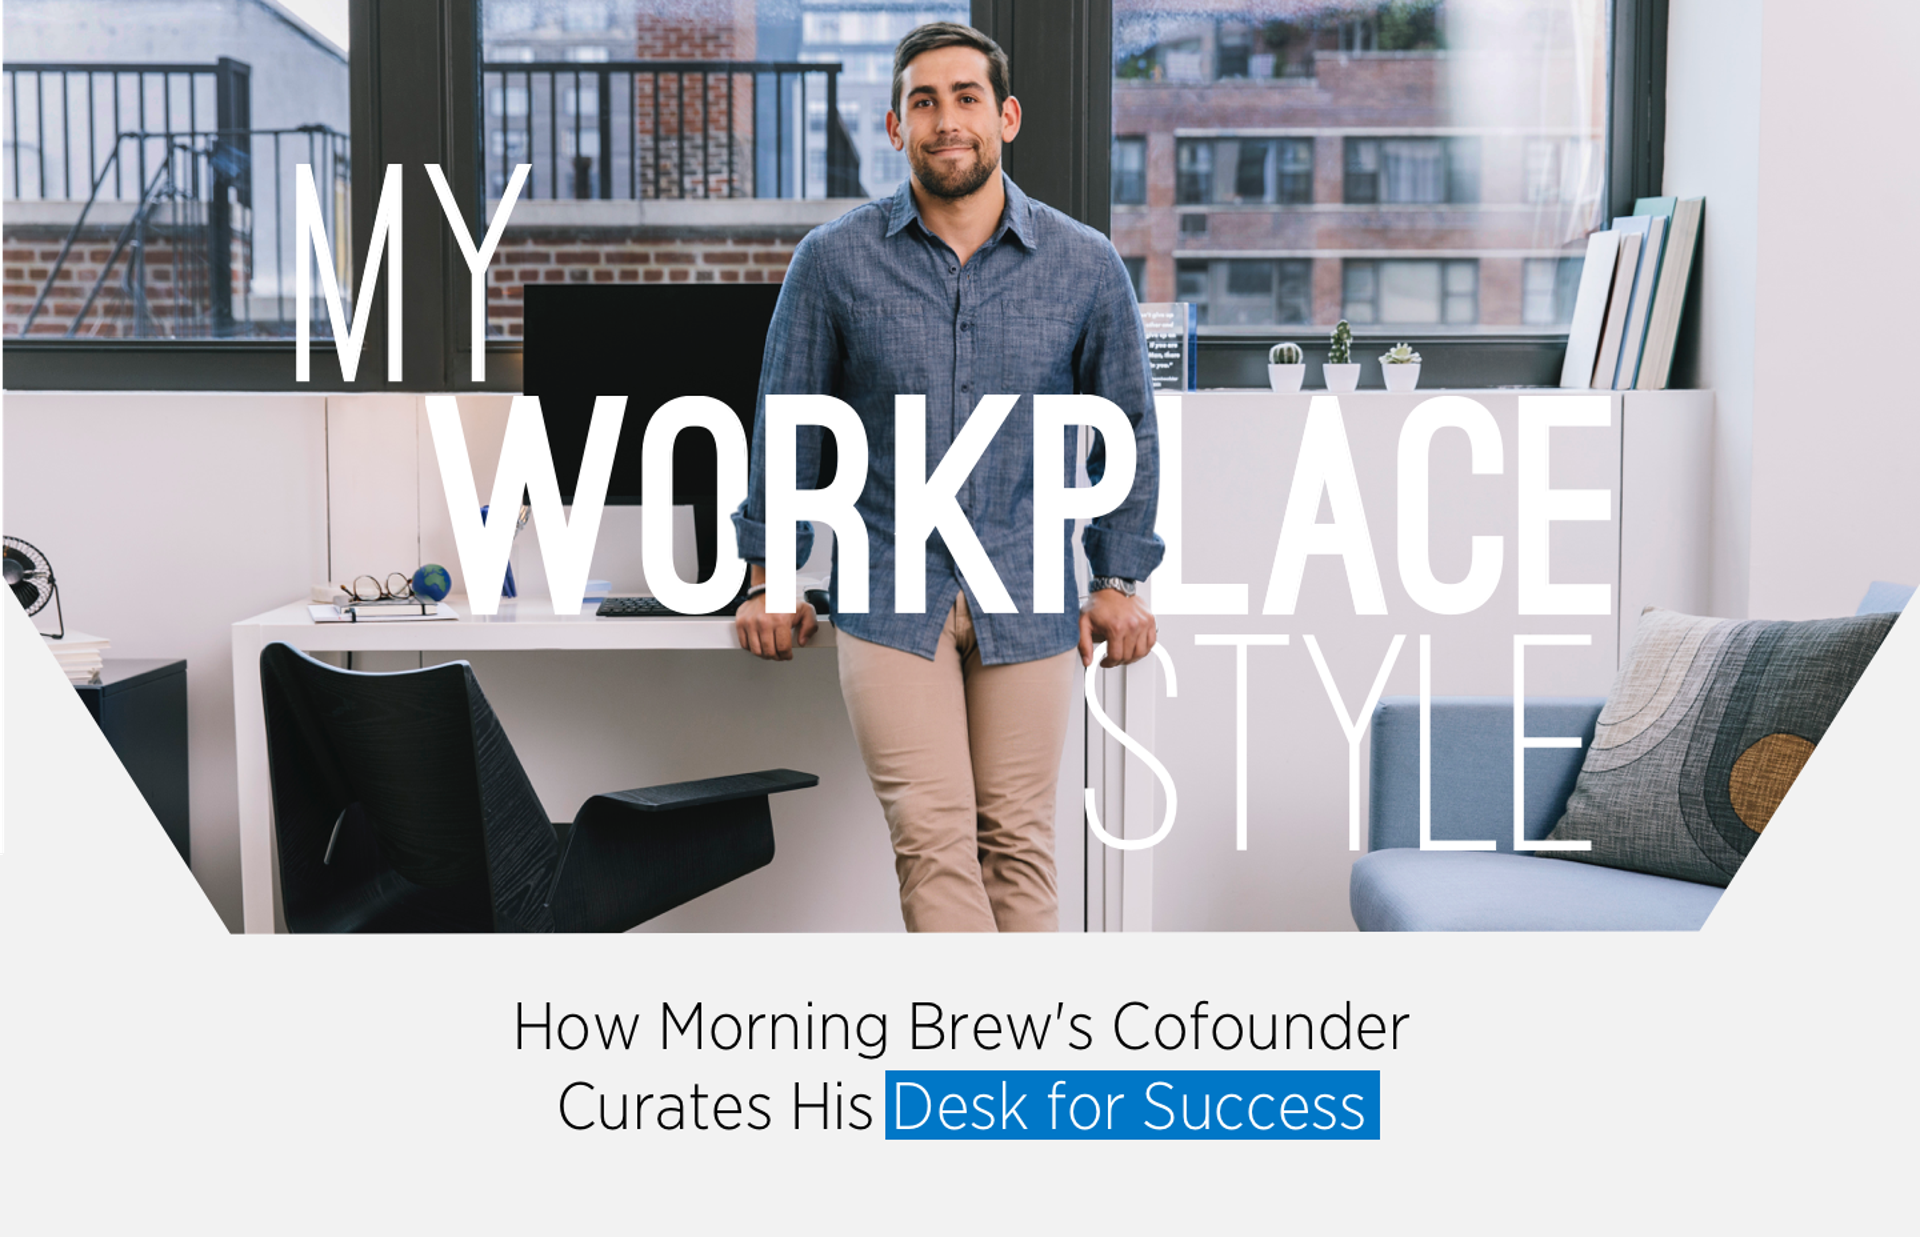 My Workplace Style: How Morning Brew's Cofounder Curates His Desk for Success